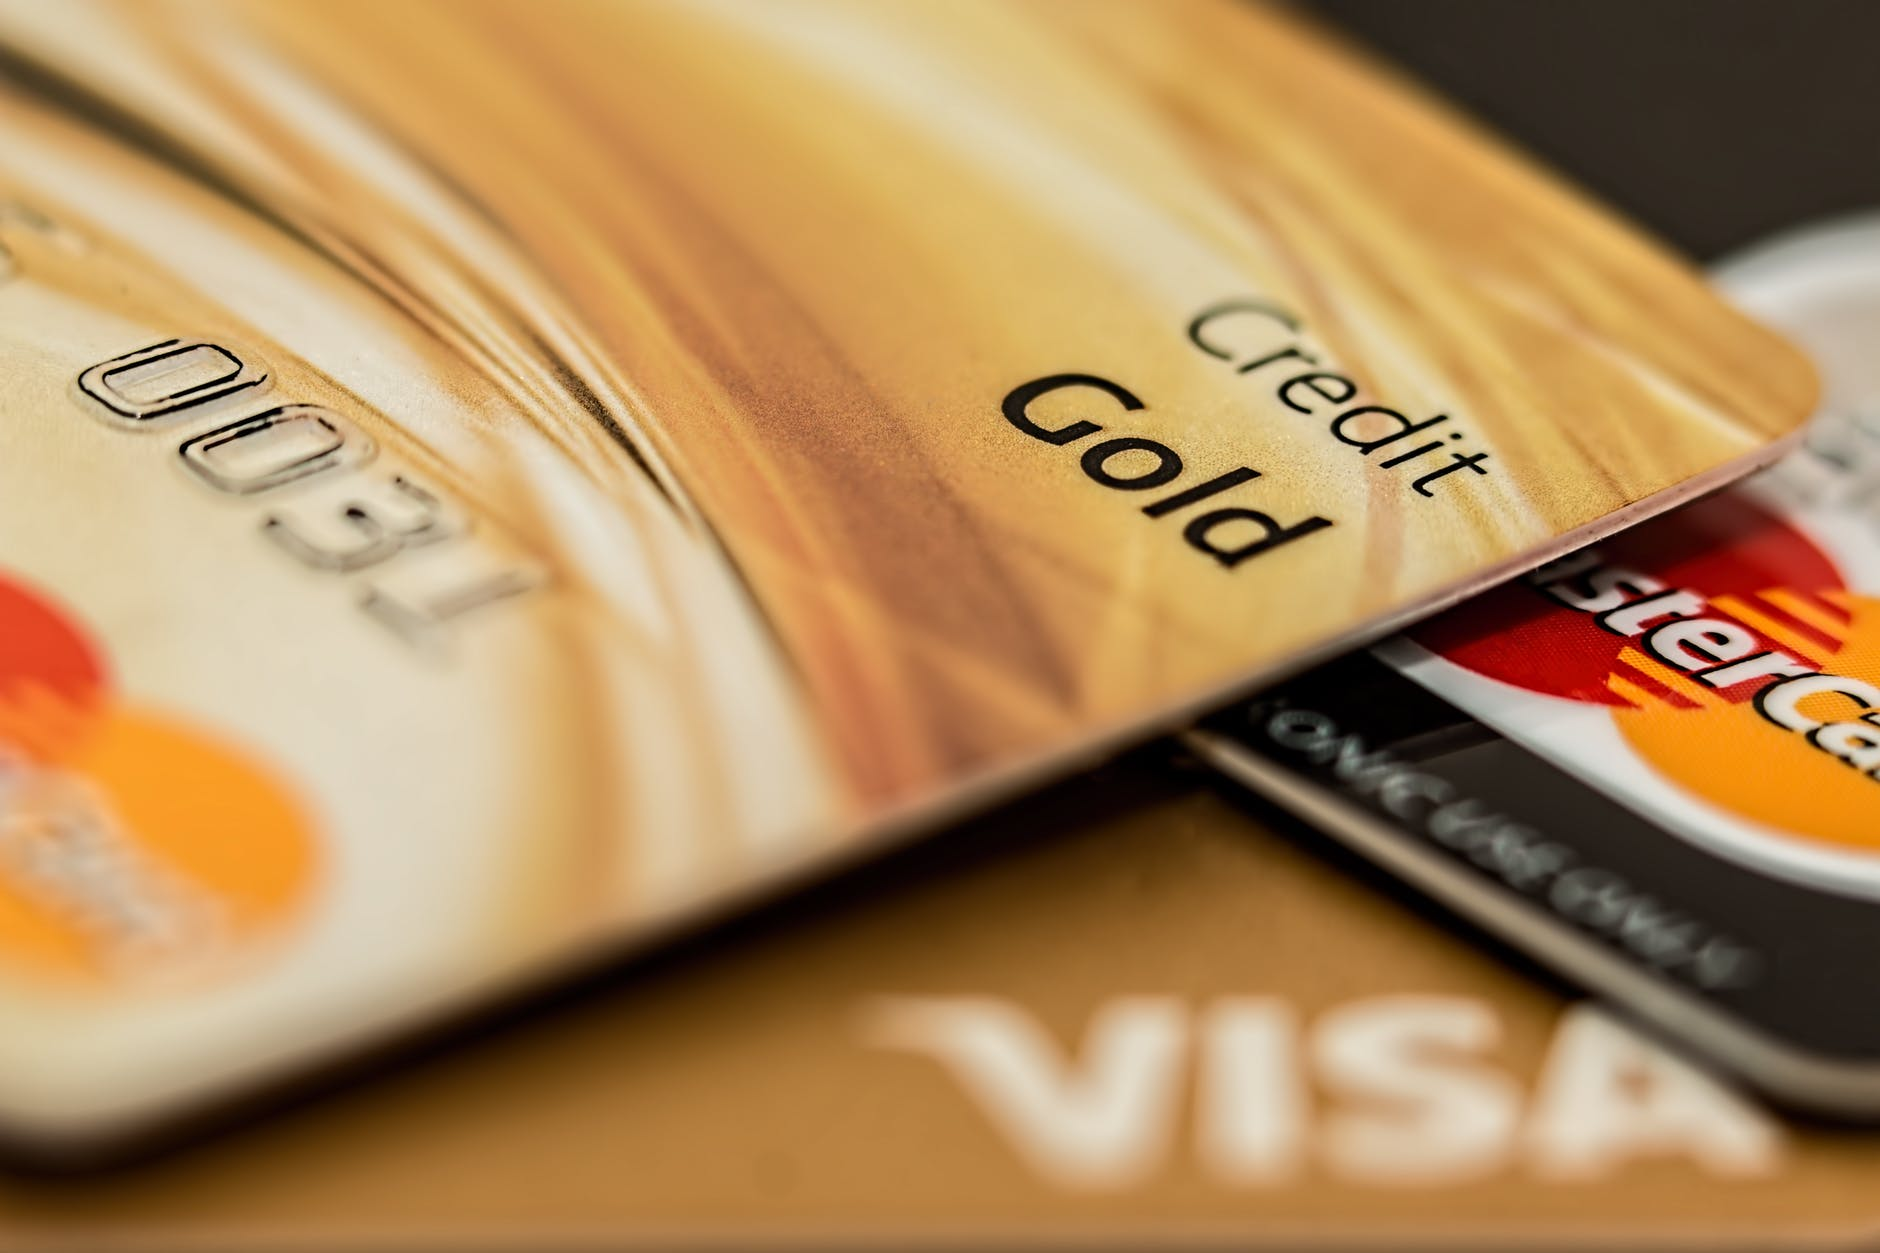 DEBTS: CREDIT CARDS